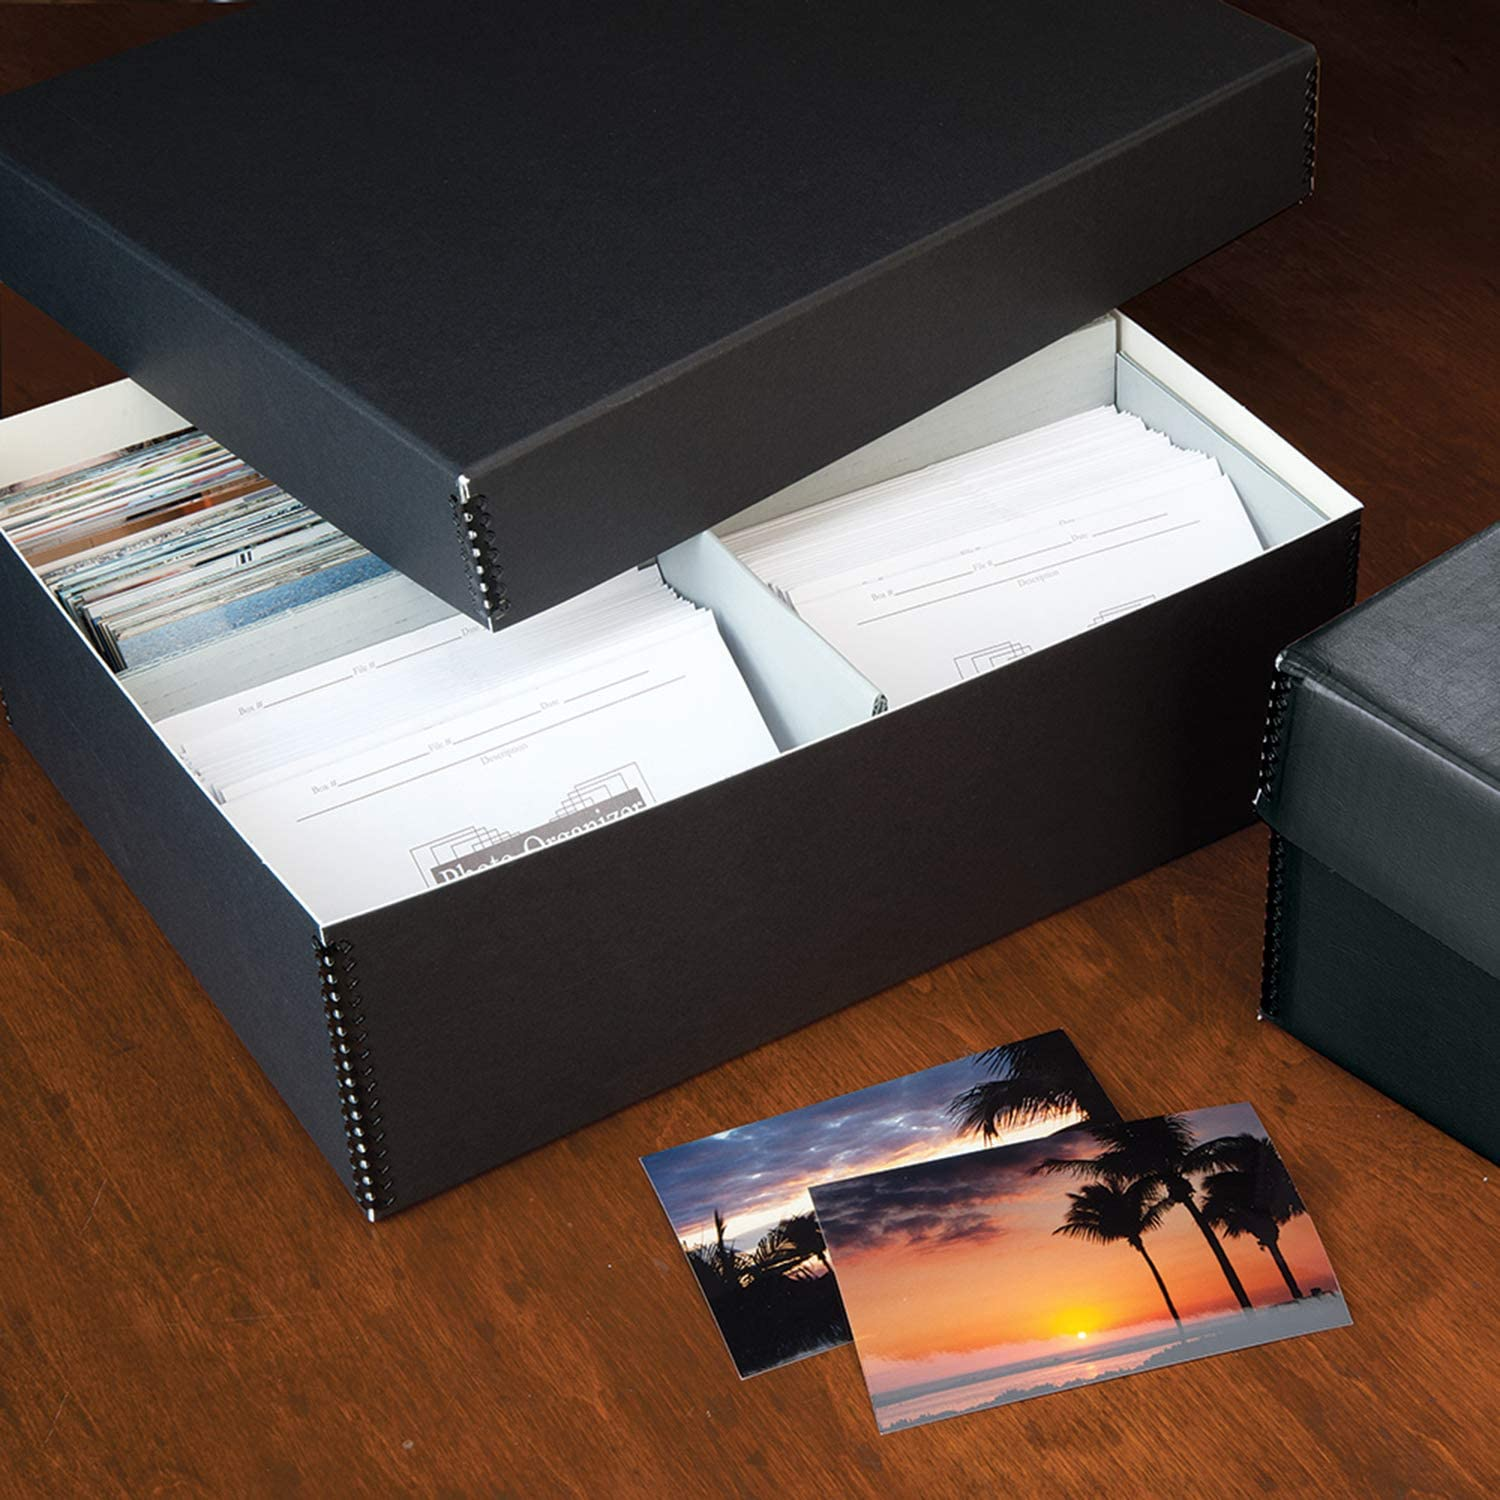 Holds up to 1700 of 4x6 Reports. Docs Lignin-Free Photo Organizer Lineco Black Archival Photo Storage Box with Removable Lid 15.5 x 12 x 5 Without Envelopes Store /& Protect Prints